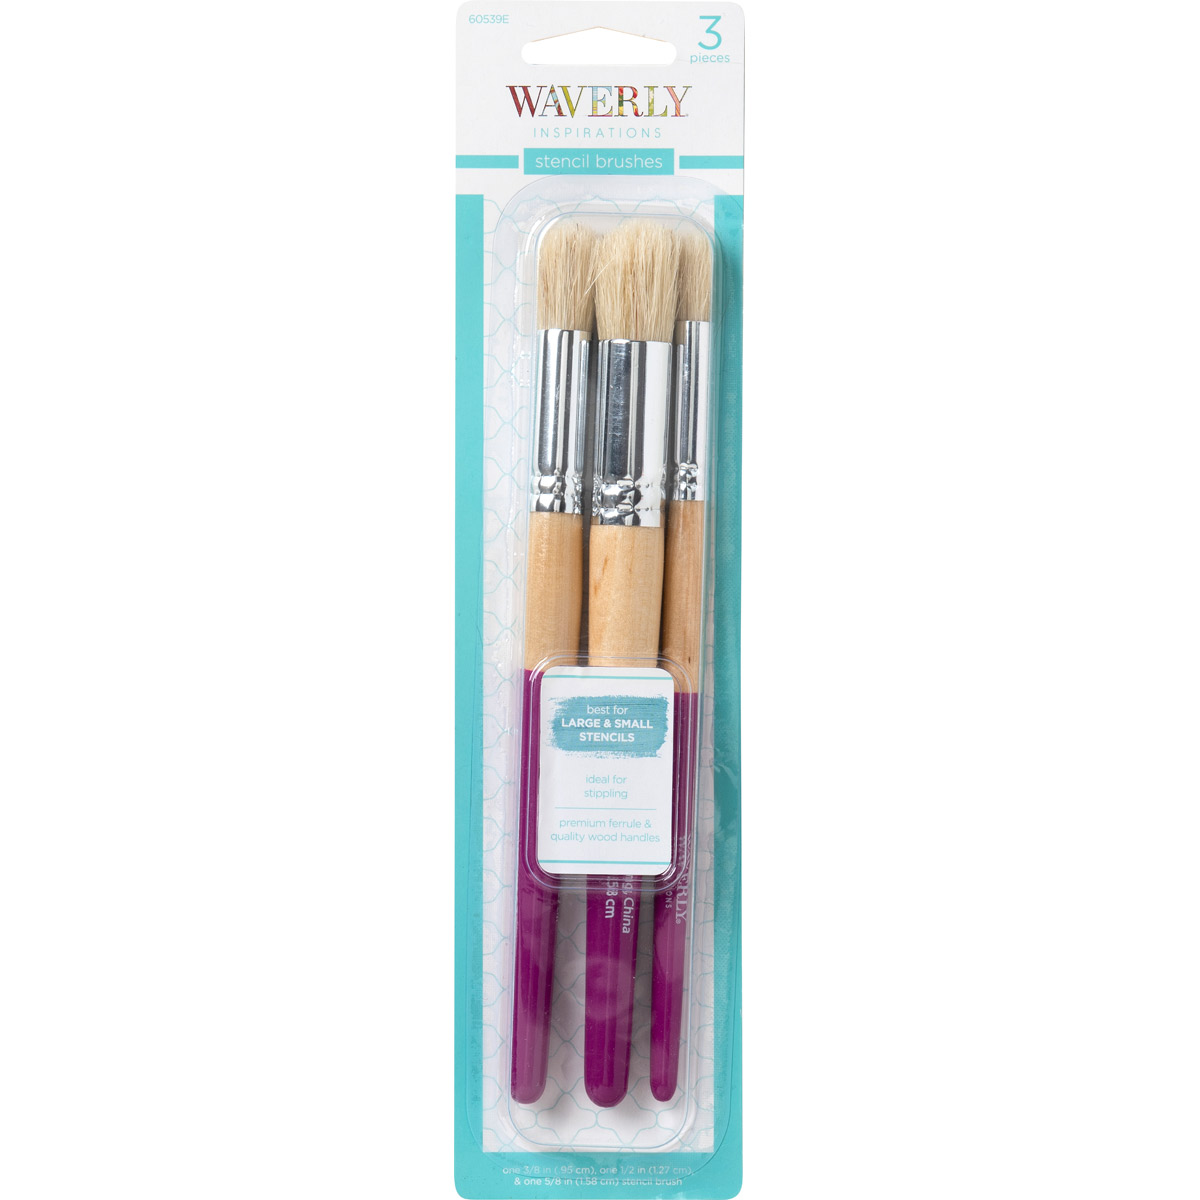 Waverly ® Inspirations Brushes - Stencil Set, 3 pc. - 60539E